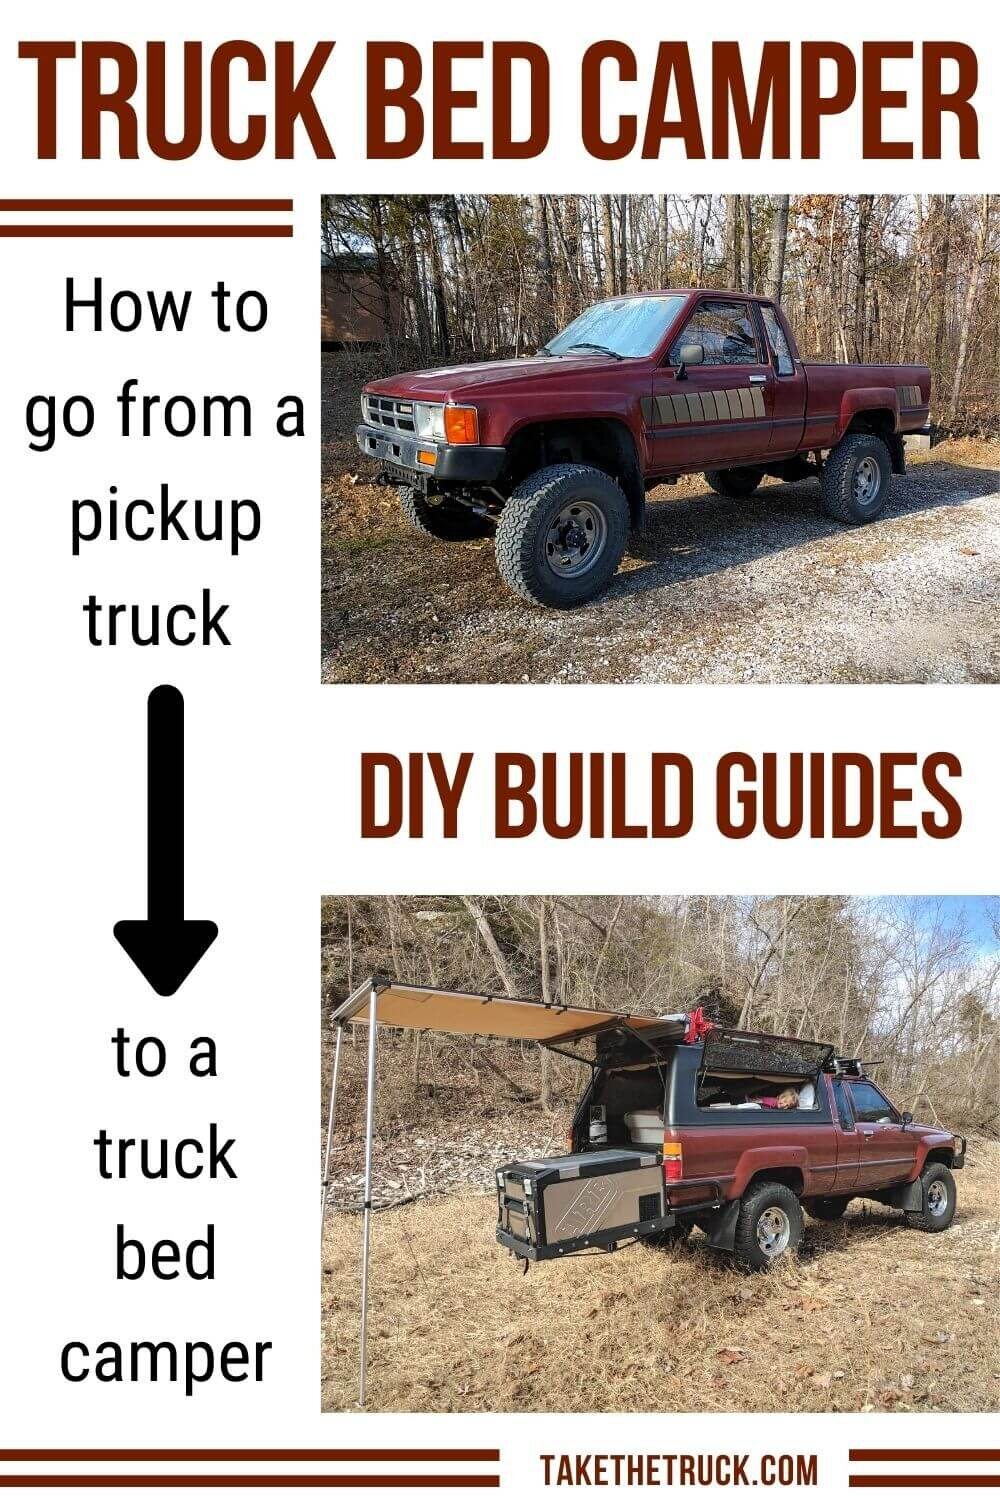 Build The Ultimate Diy Truck Bed Camper And Overlanding Rig Take The Truck